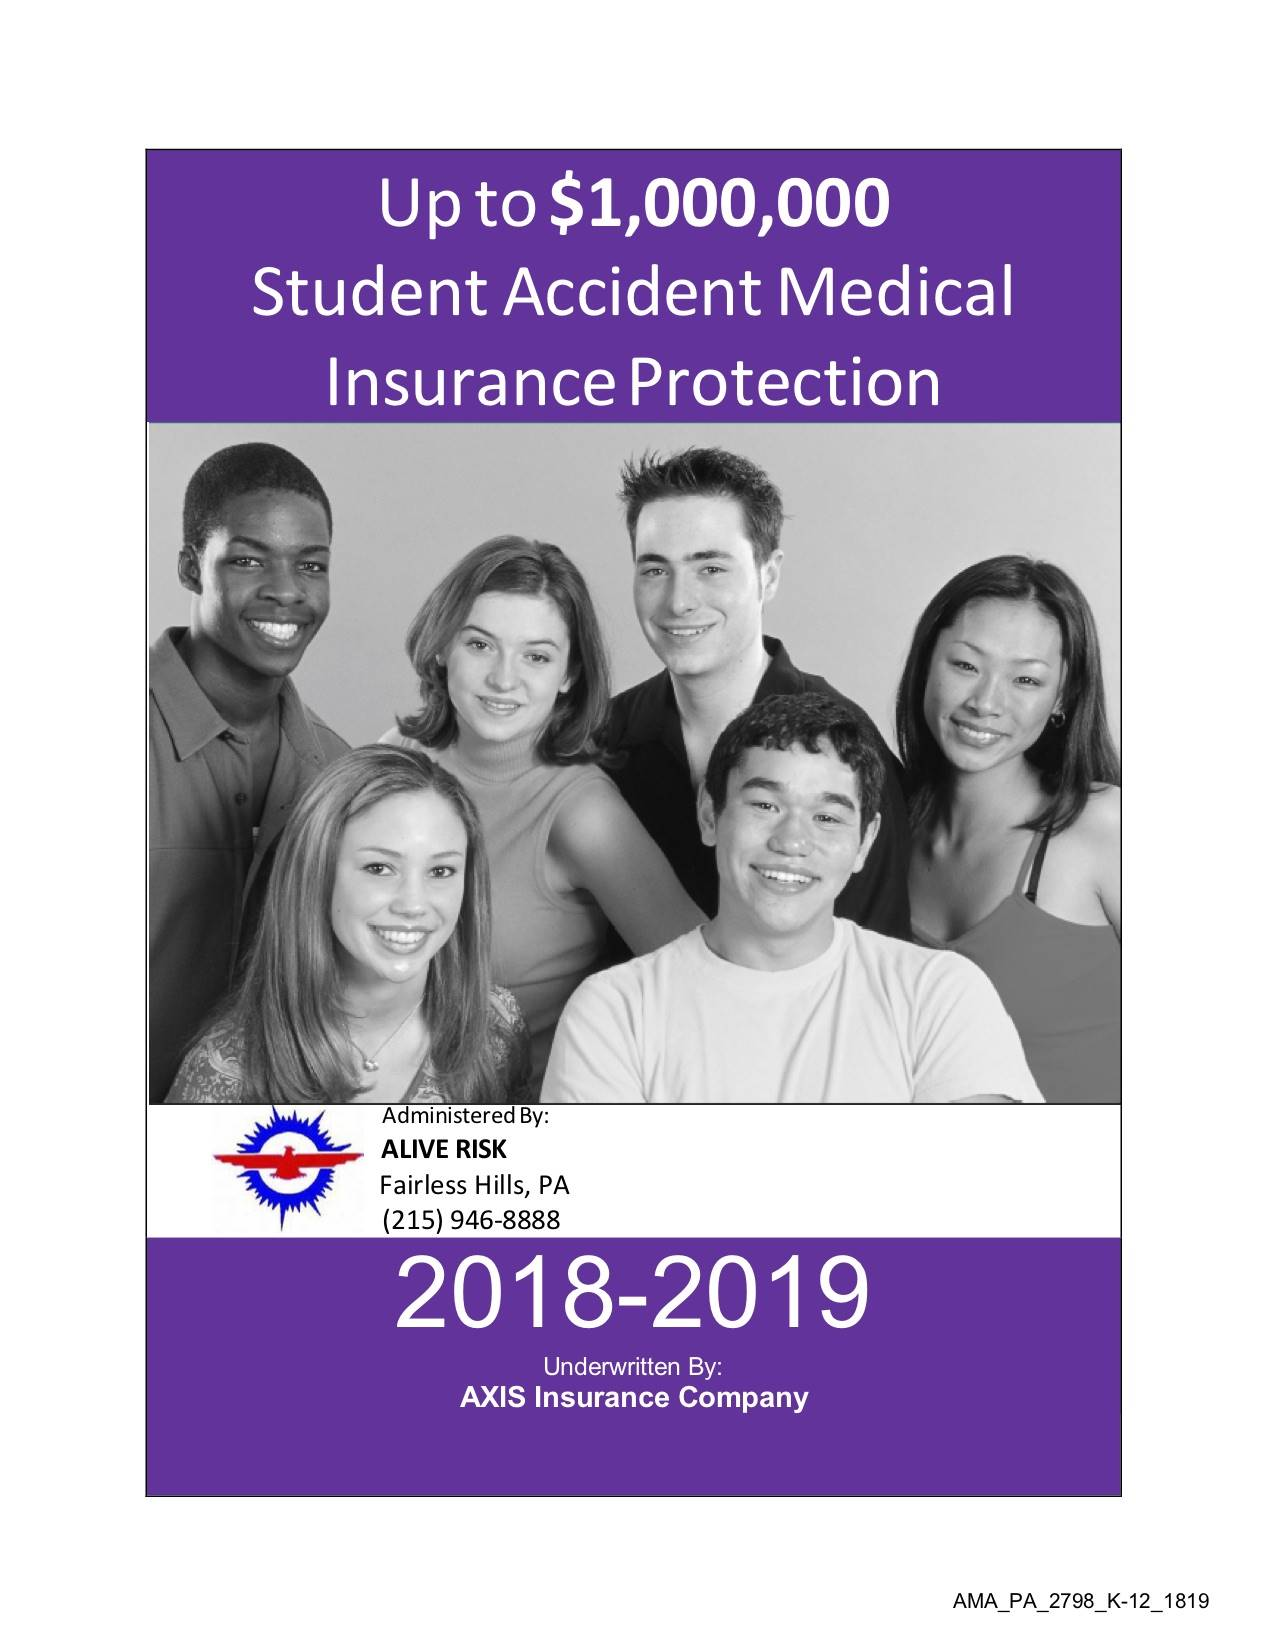 Student Accident Insurance Ad